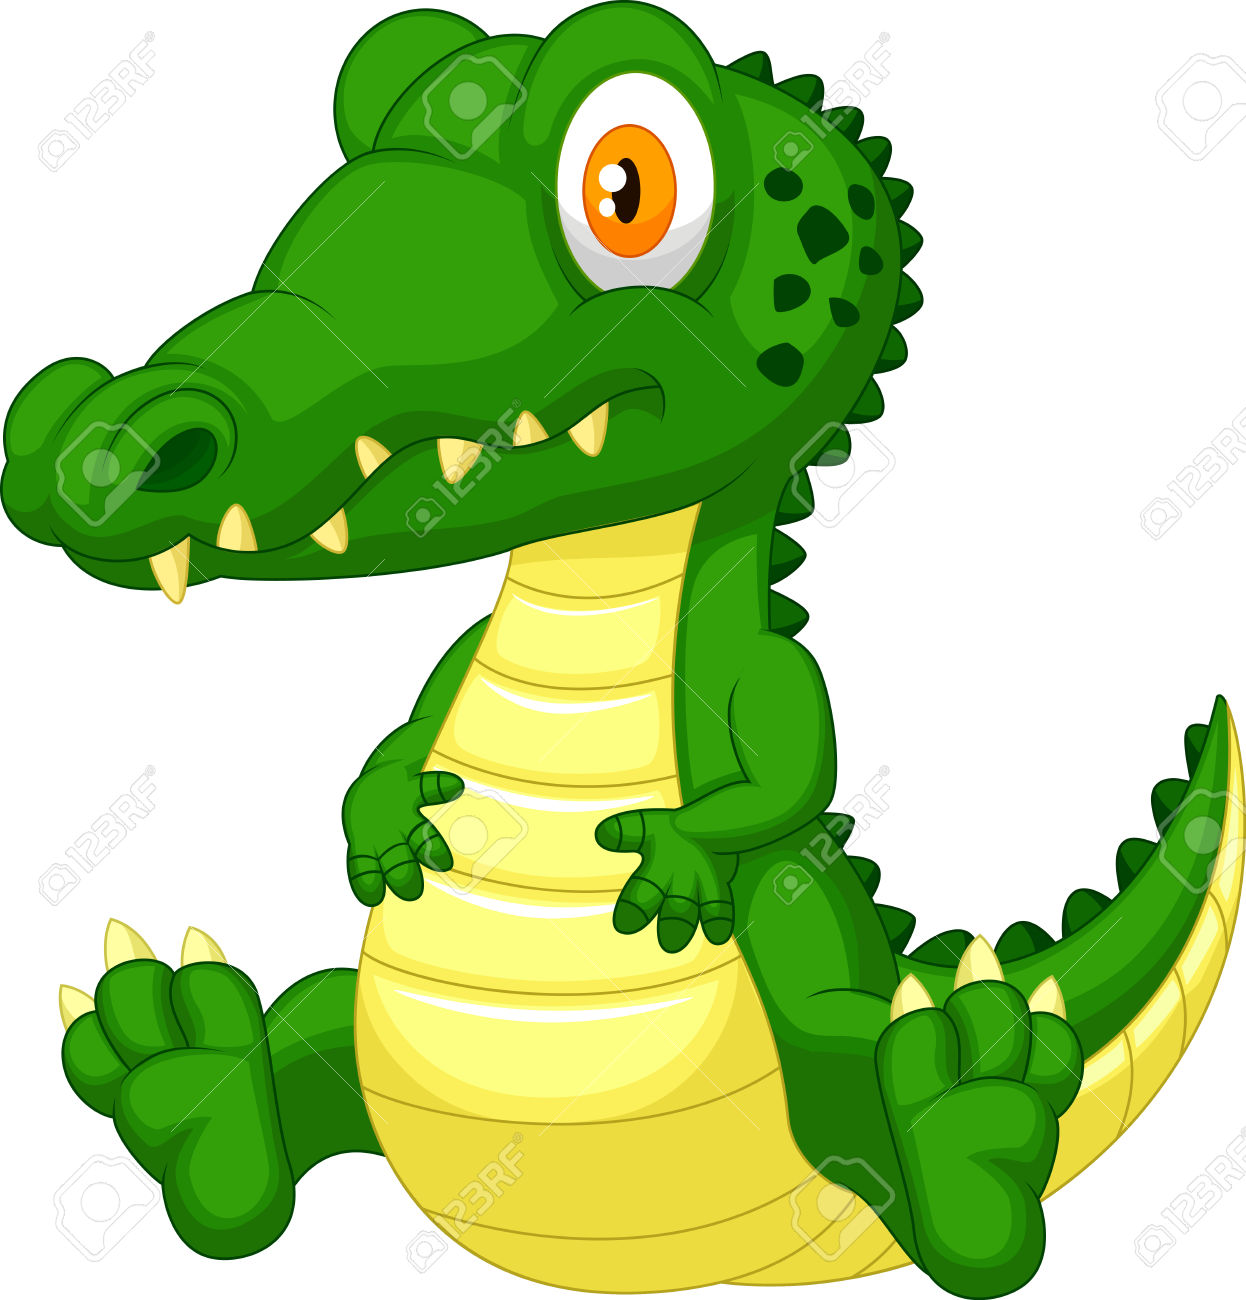 Cute Crocodile Cartoon Royalty Free Cliparts, Vectors, And Stock.